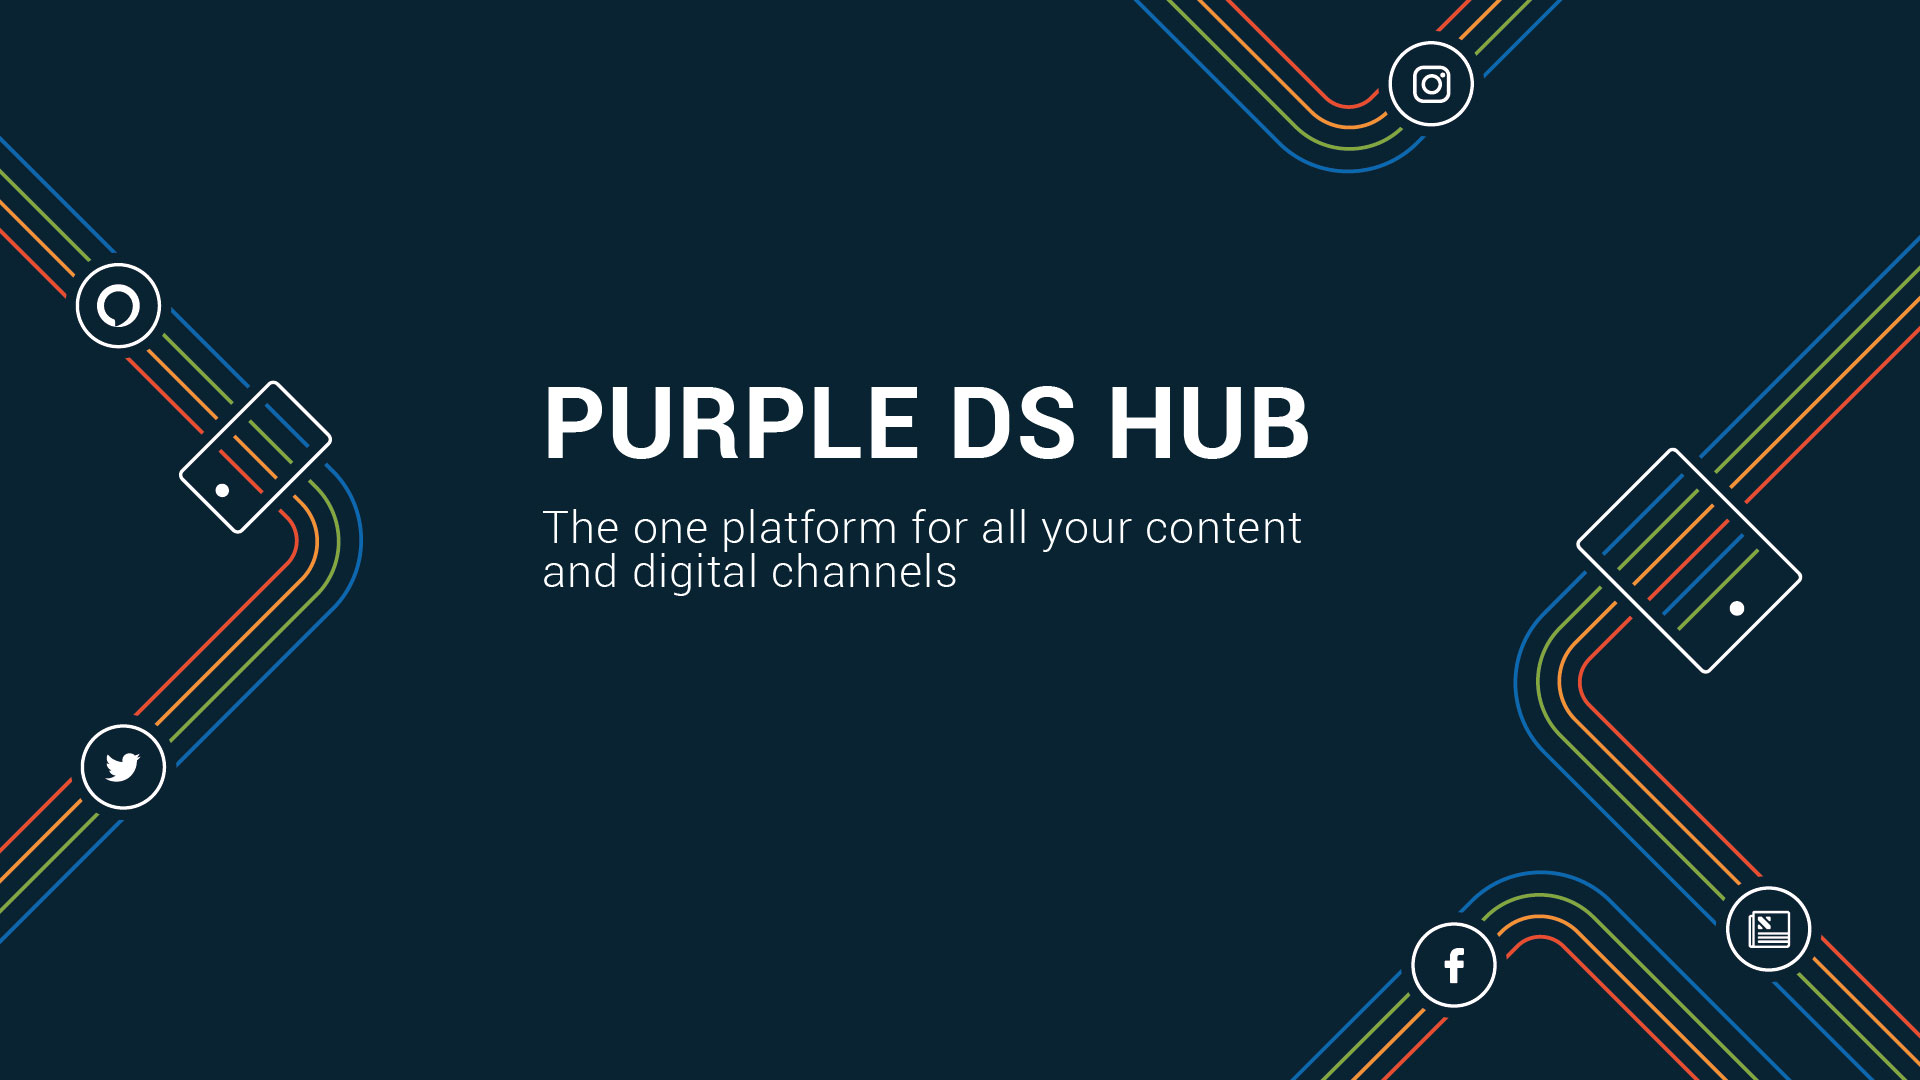 Purple DS HUB for Publishers